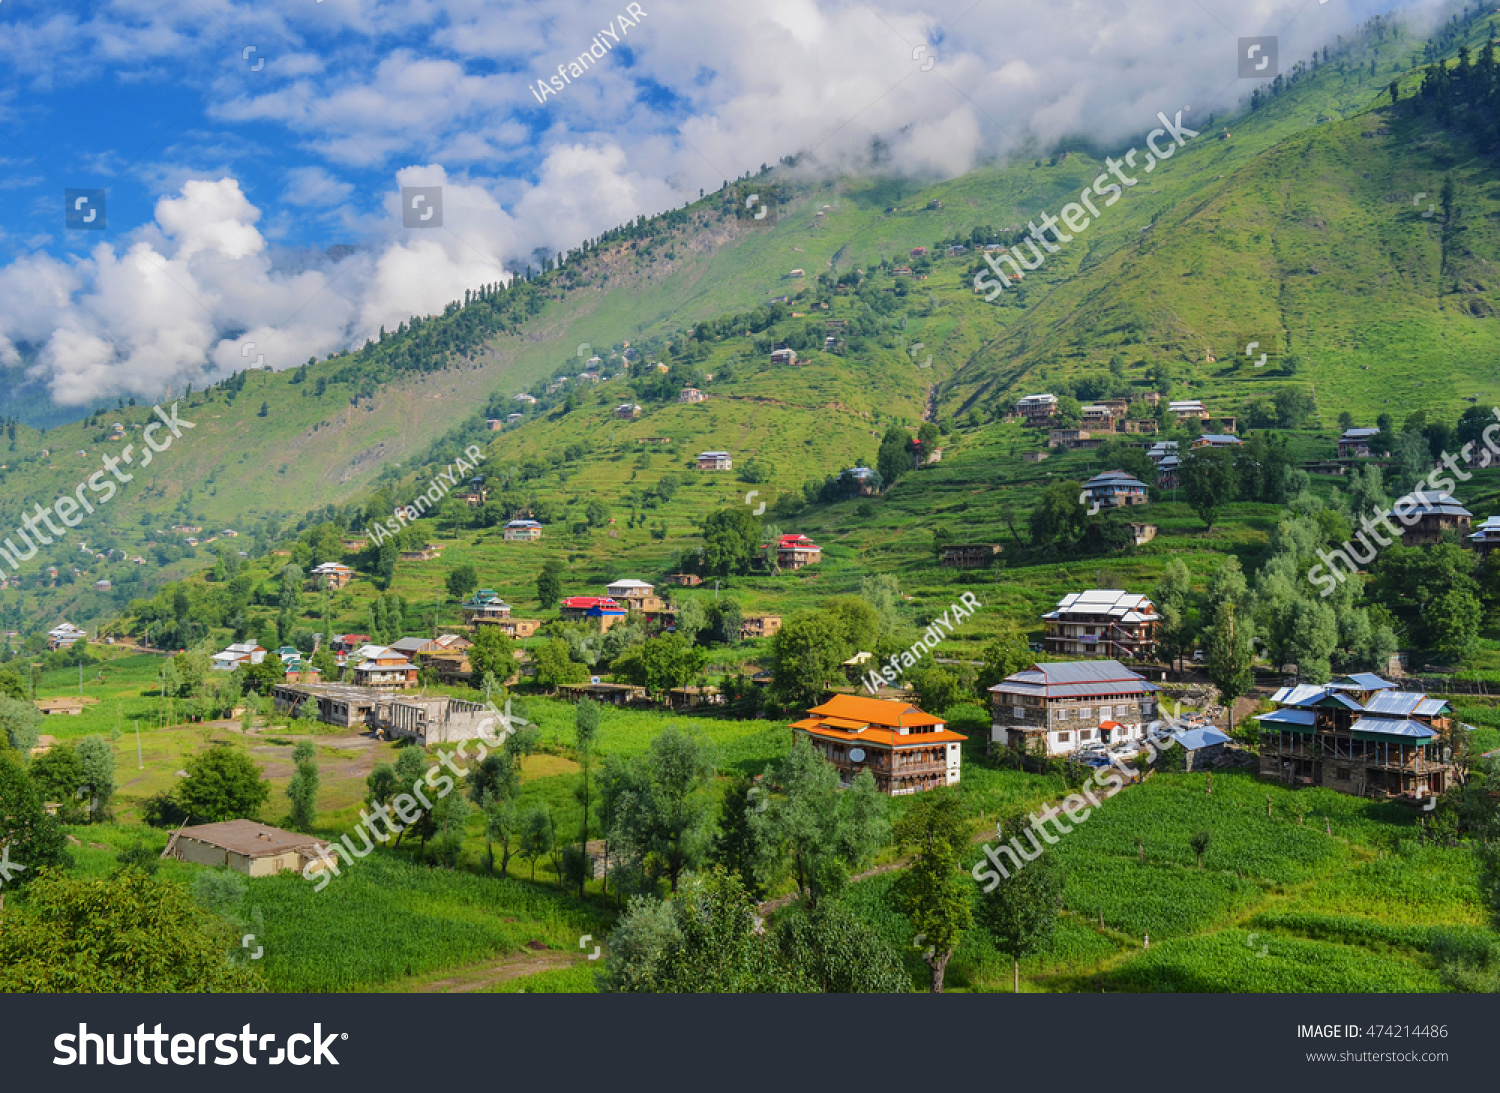 Beautiful landscape view of kashmir pakistan village houses made of woods